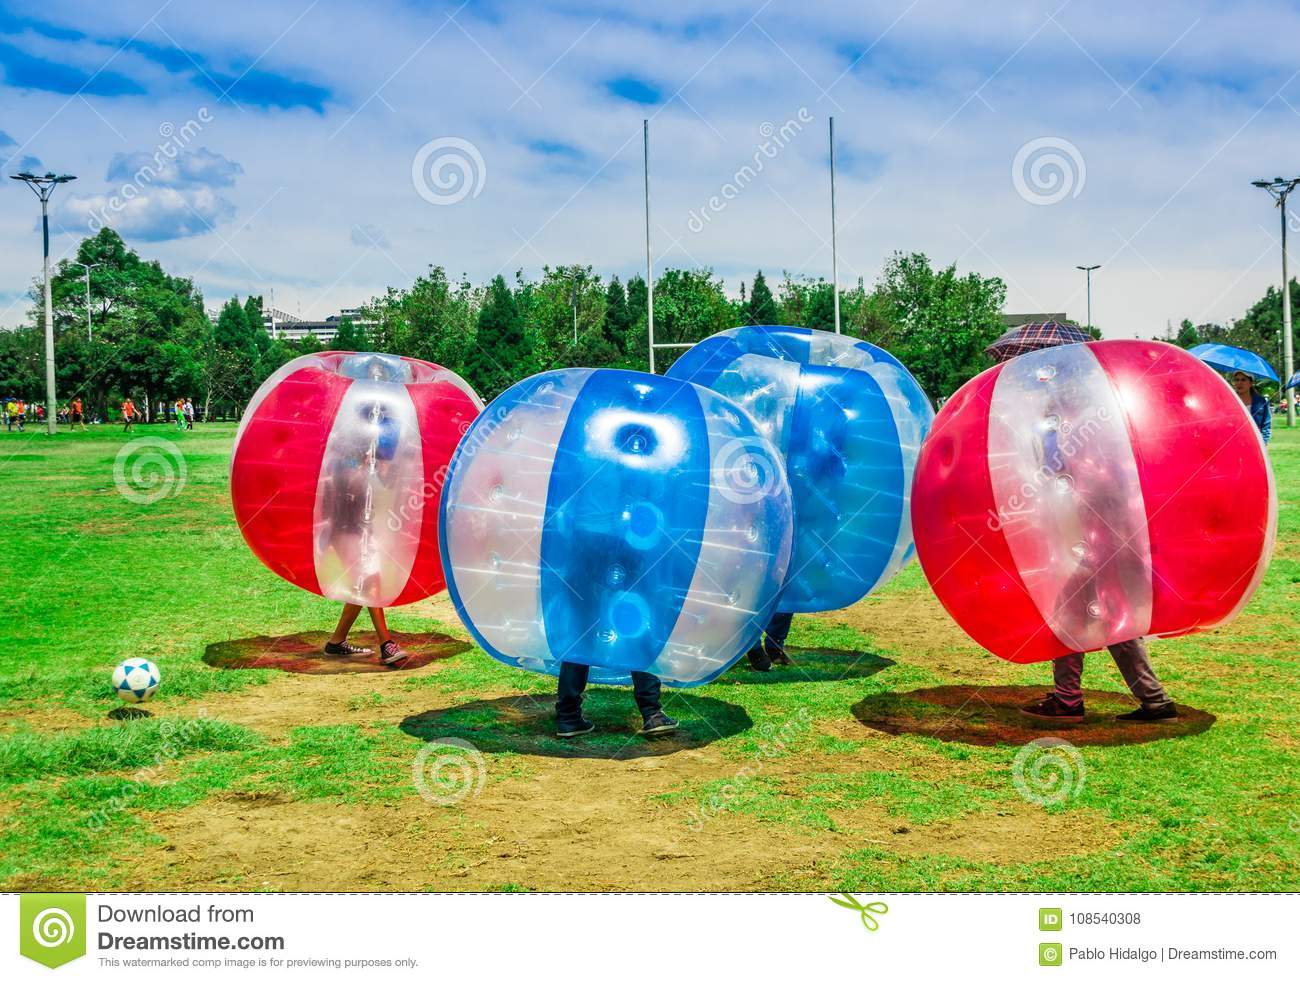 QUITO, ECUADOR - NOVEMBER 28, 2017: Young people playing soccer while is inside of giant inflatable balls in the